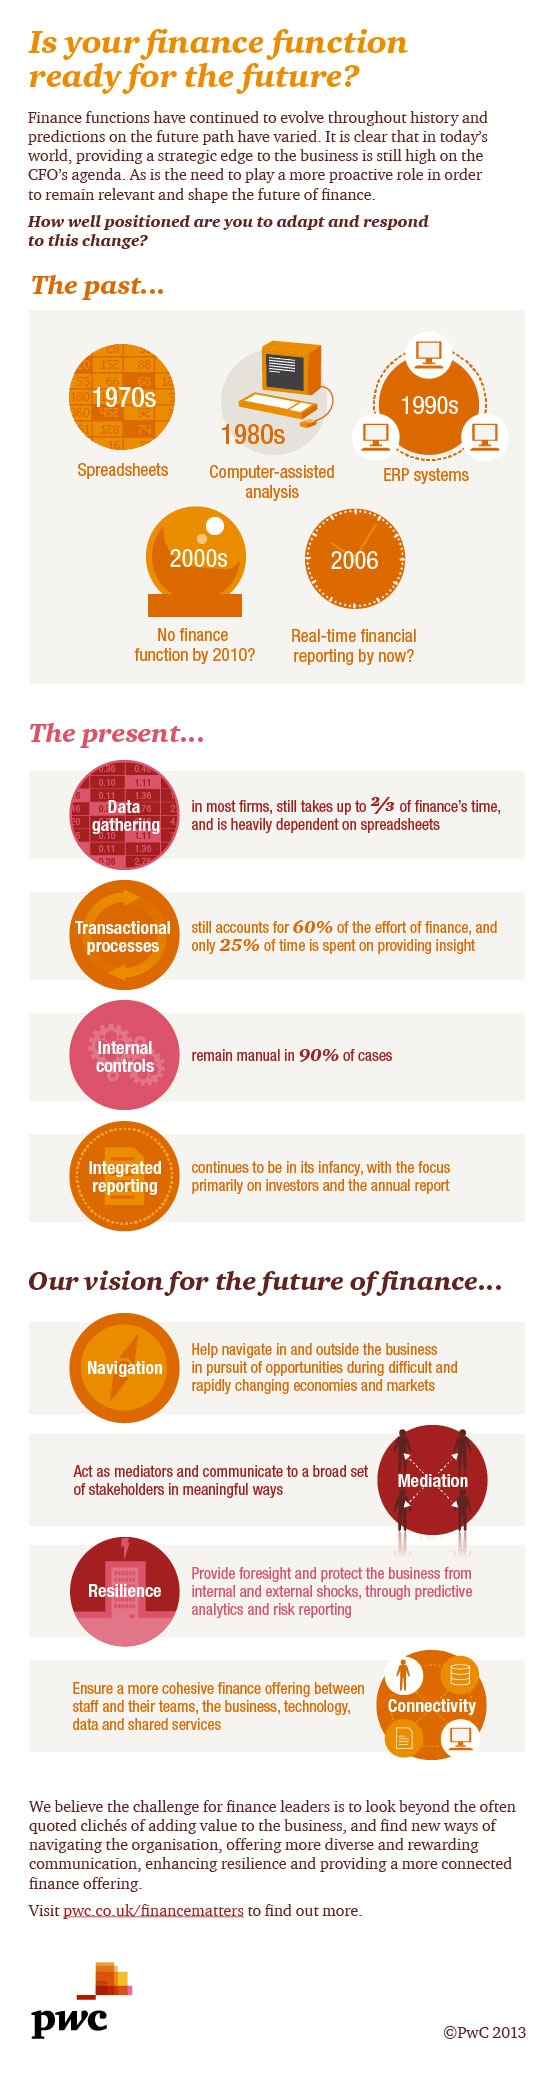 Is your finance function ready for the future?